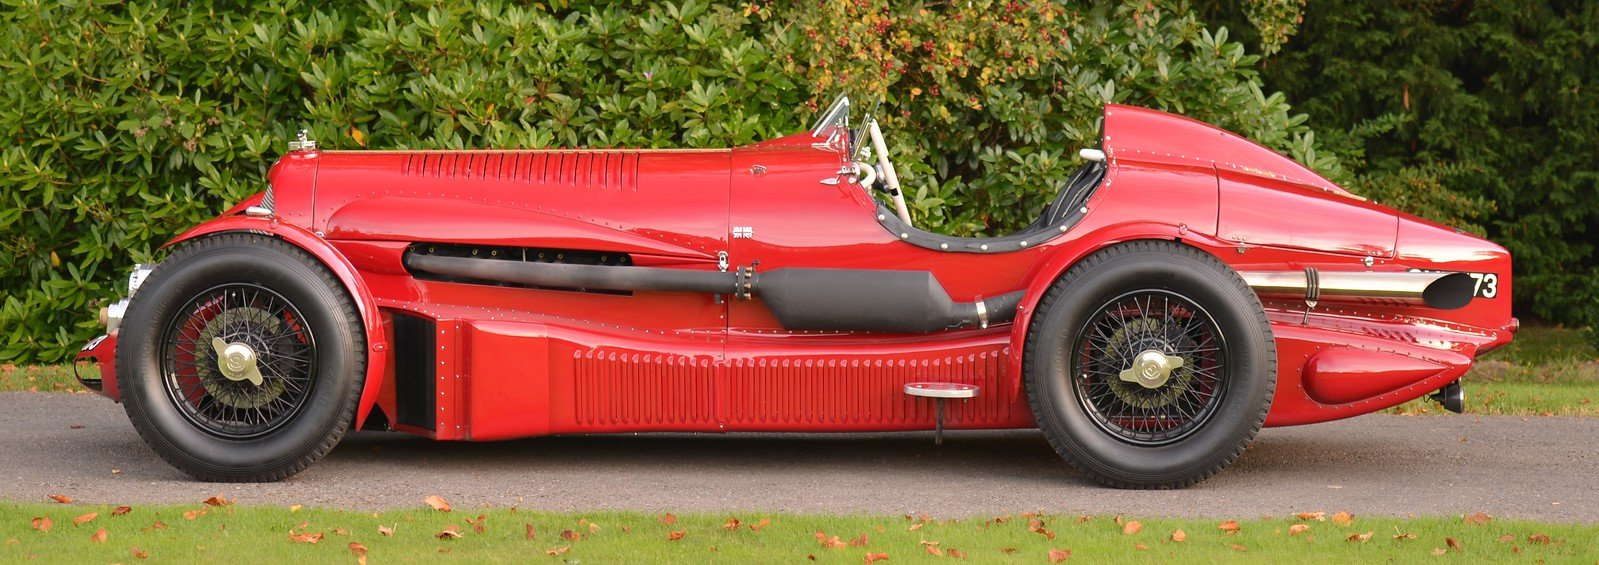 1953 Bentley 6.5 Litre Supercharged Petersen Racer For Sale (picture 3 of 6)